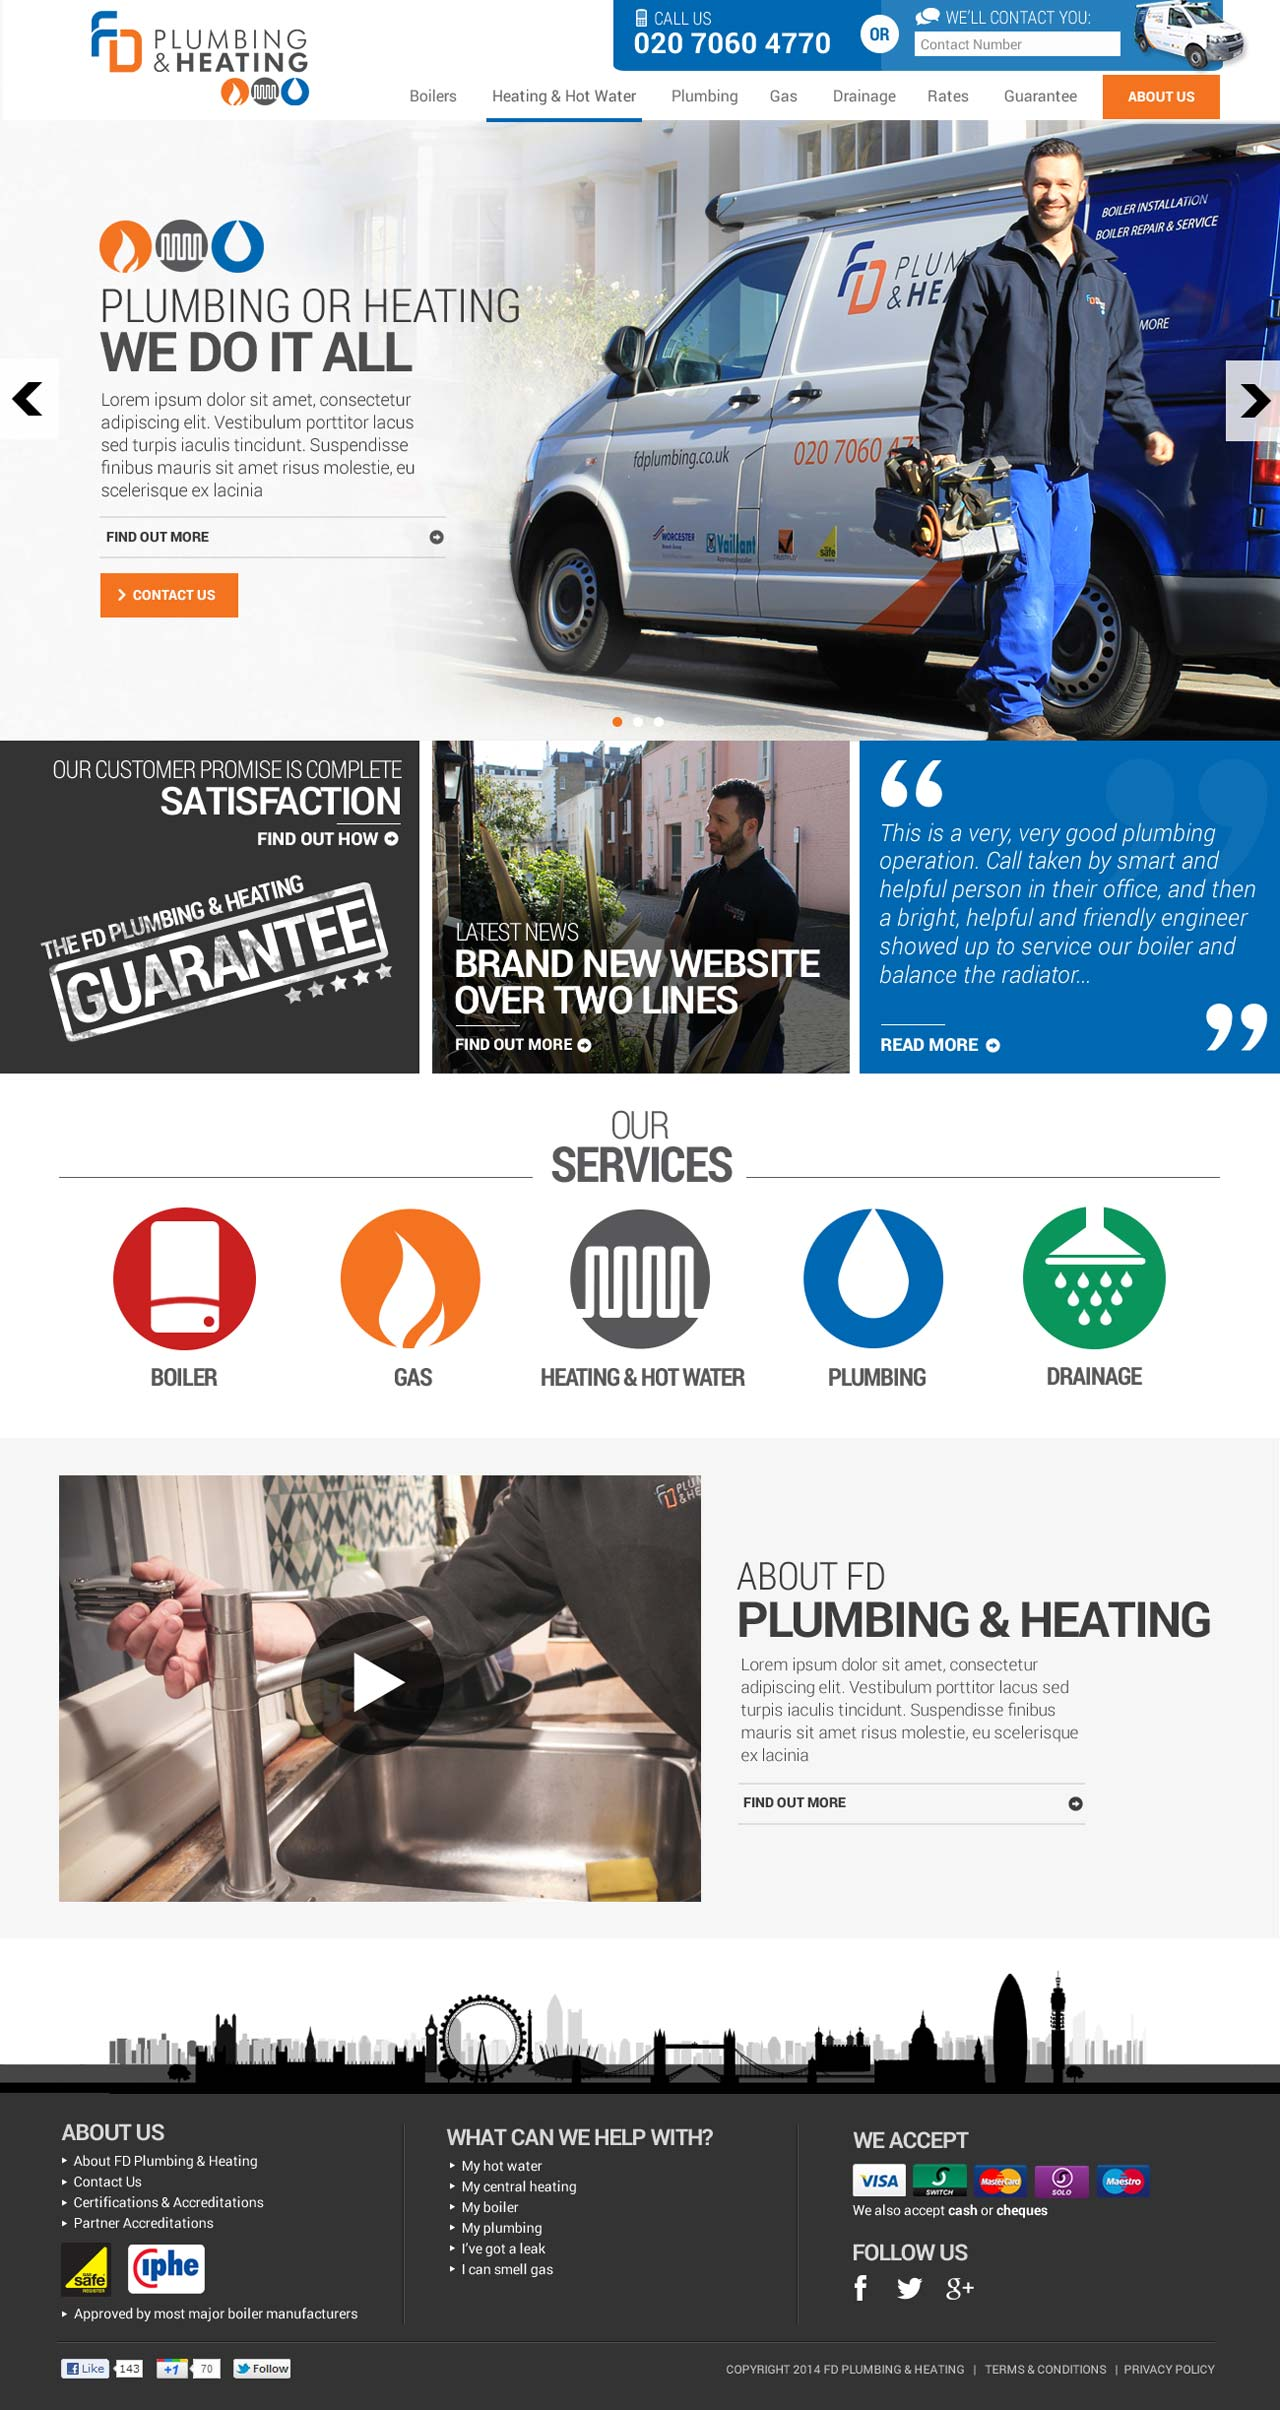 FD Plumbing and Heating Homepage screengrab